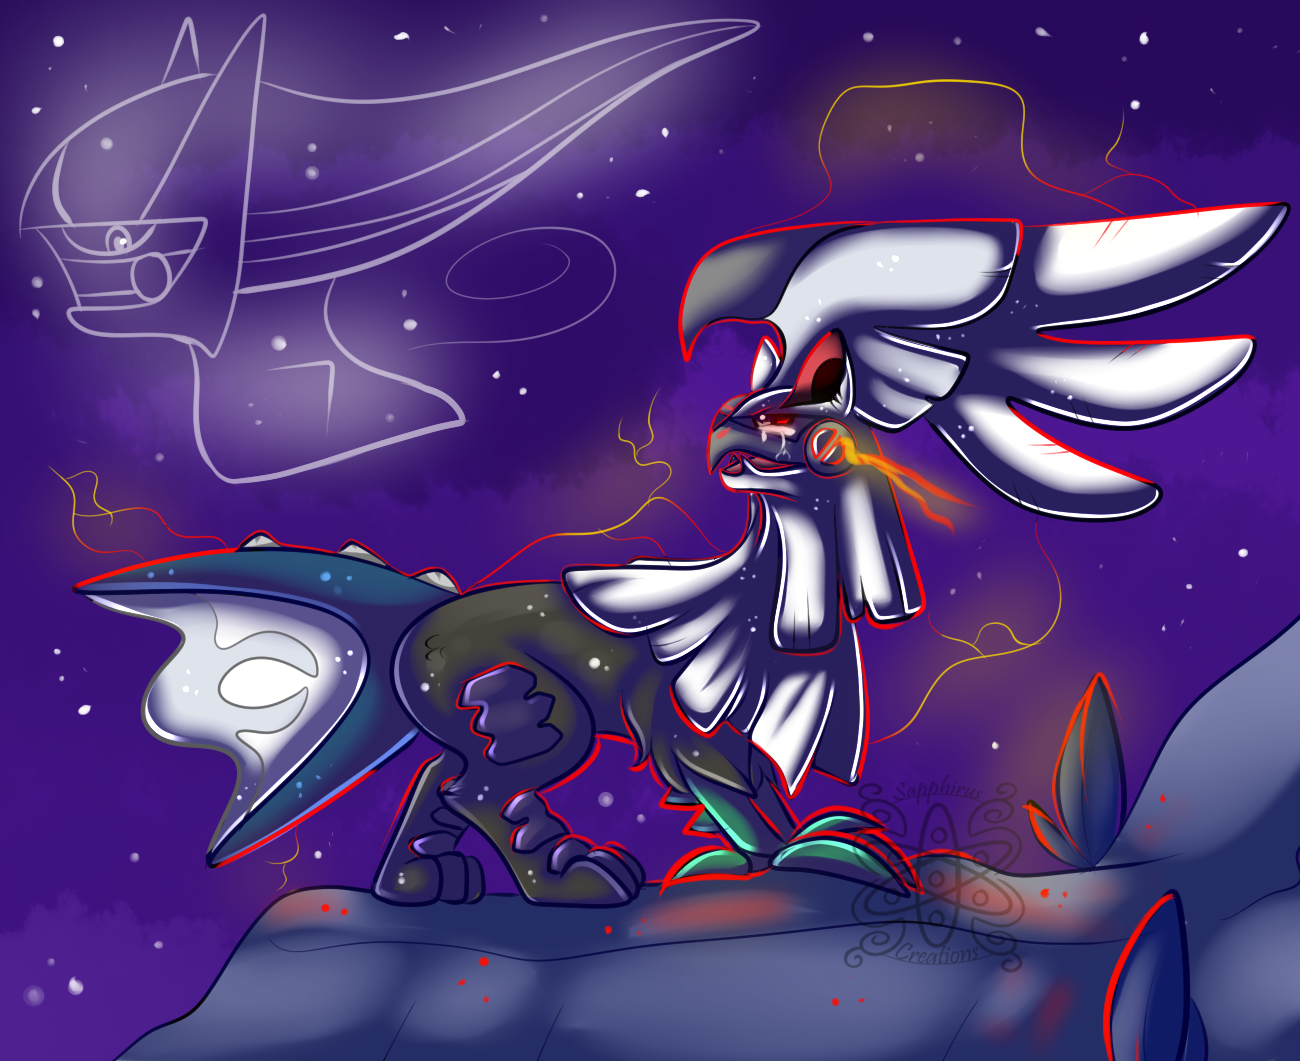 Only a Shadow, a fake Arceus..... — Weasyl